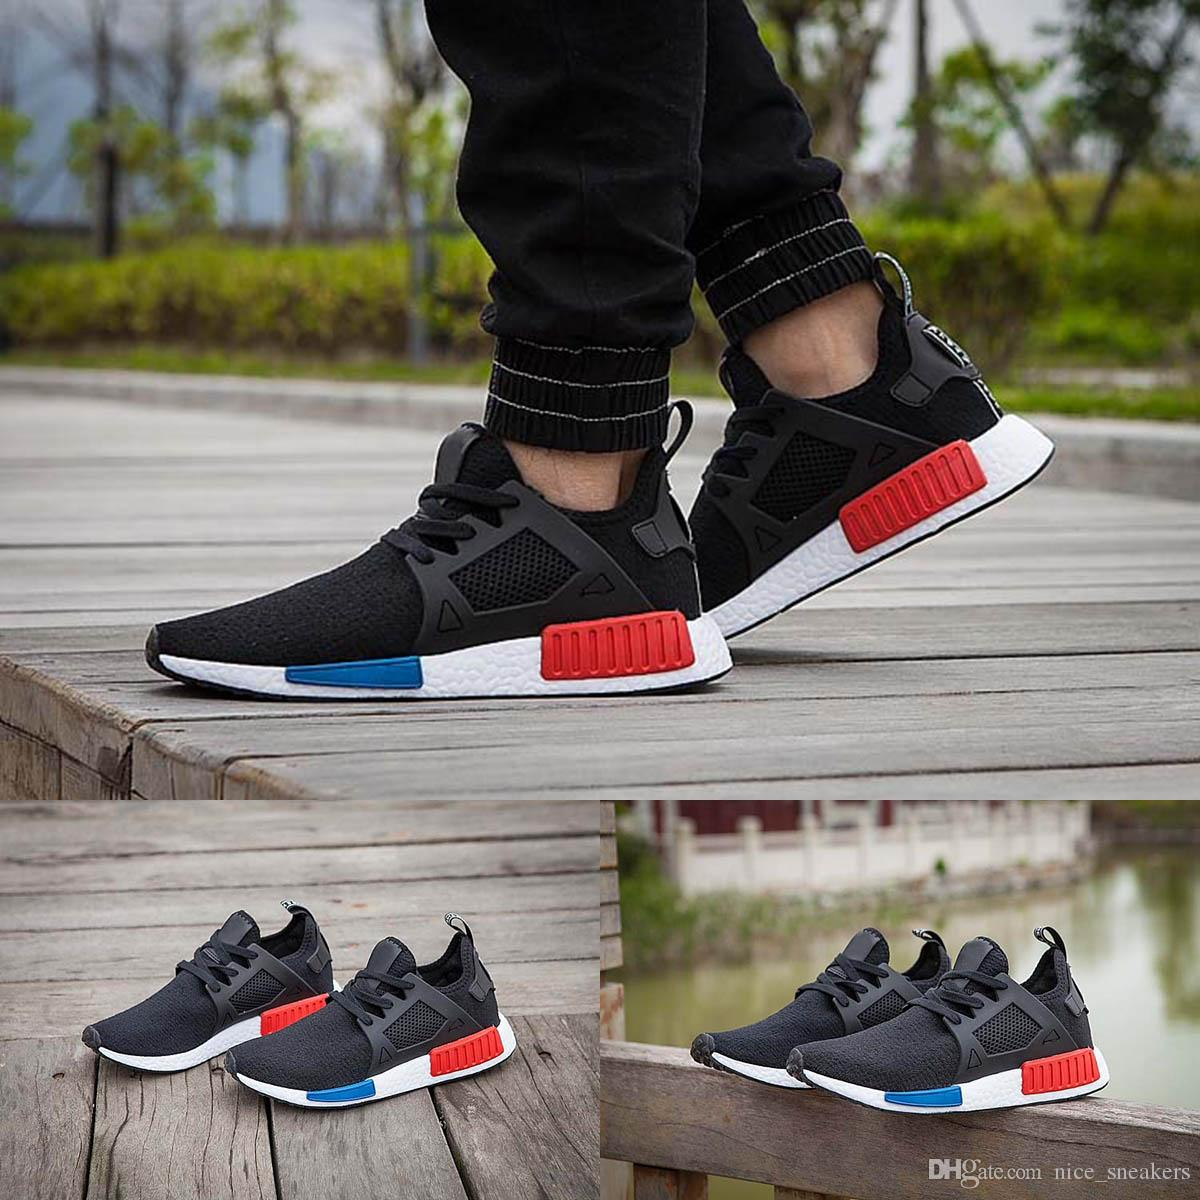 Adidas NMD XR1 PK Glitch Black vs Triple Black On Feet and Up